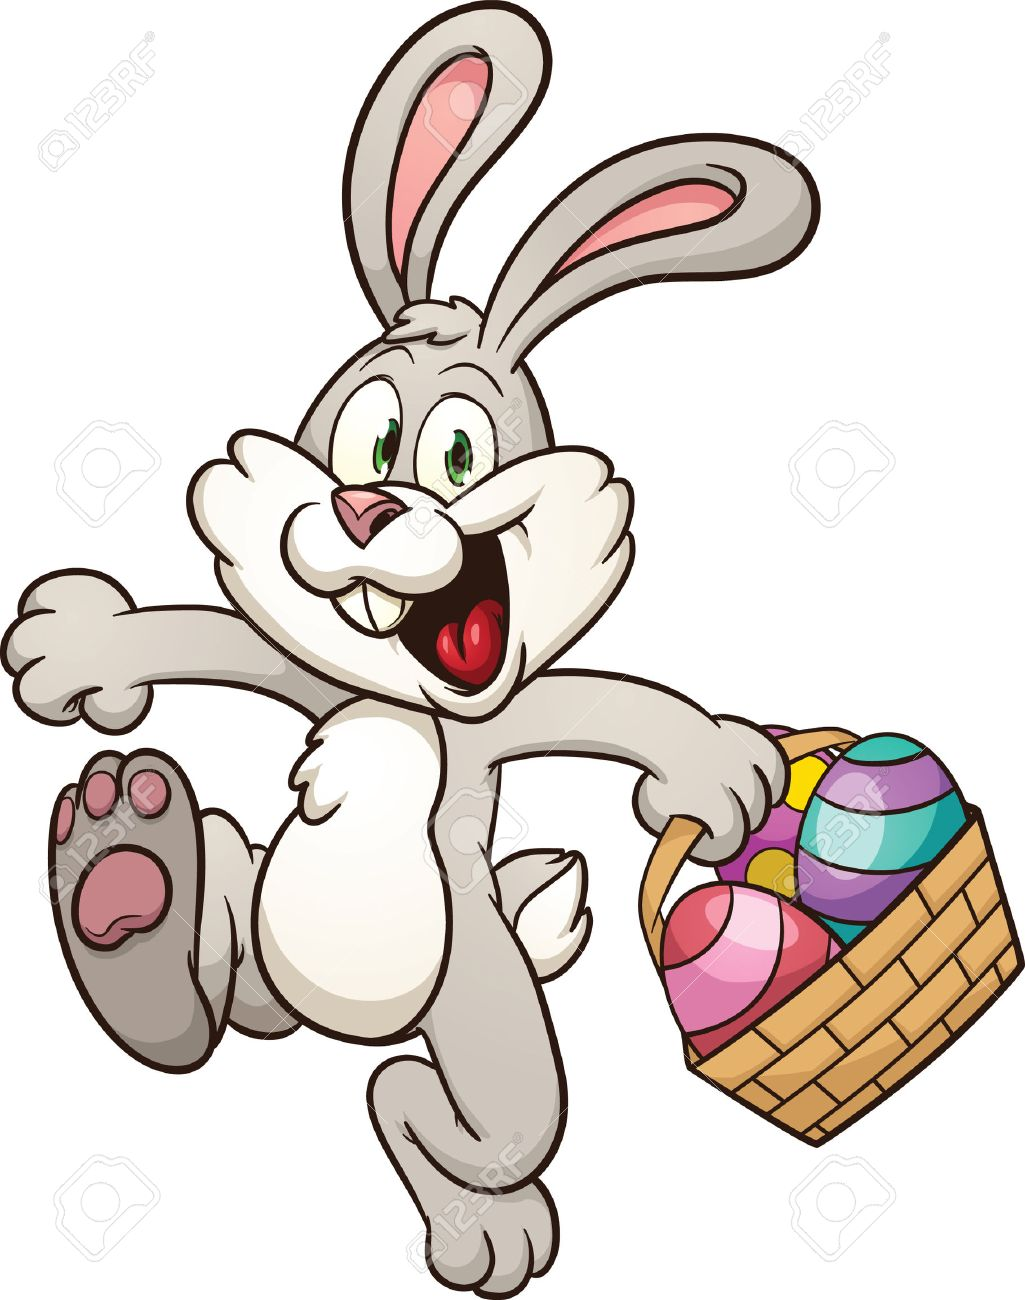 Image result for hopping easter bunny